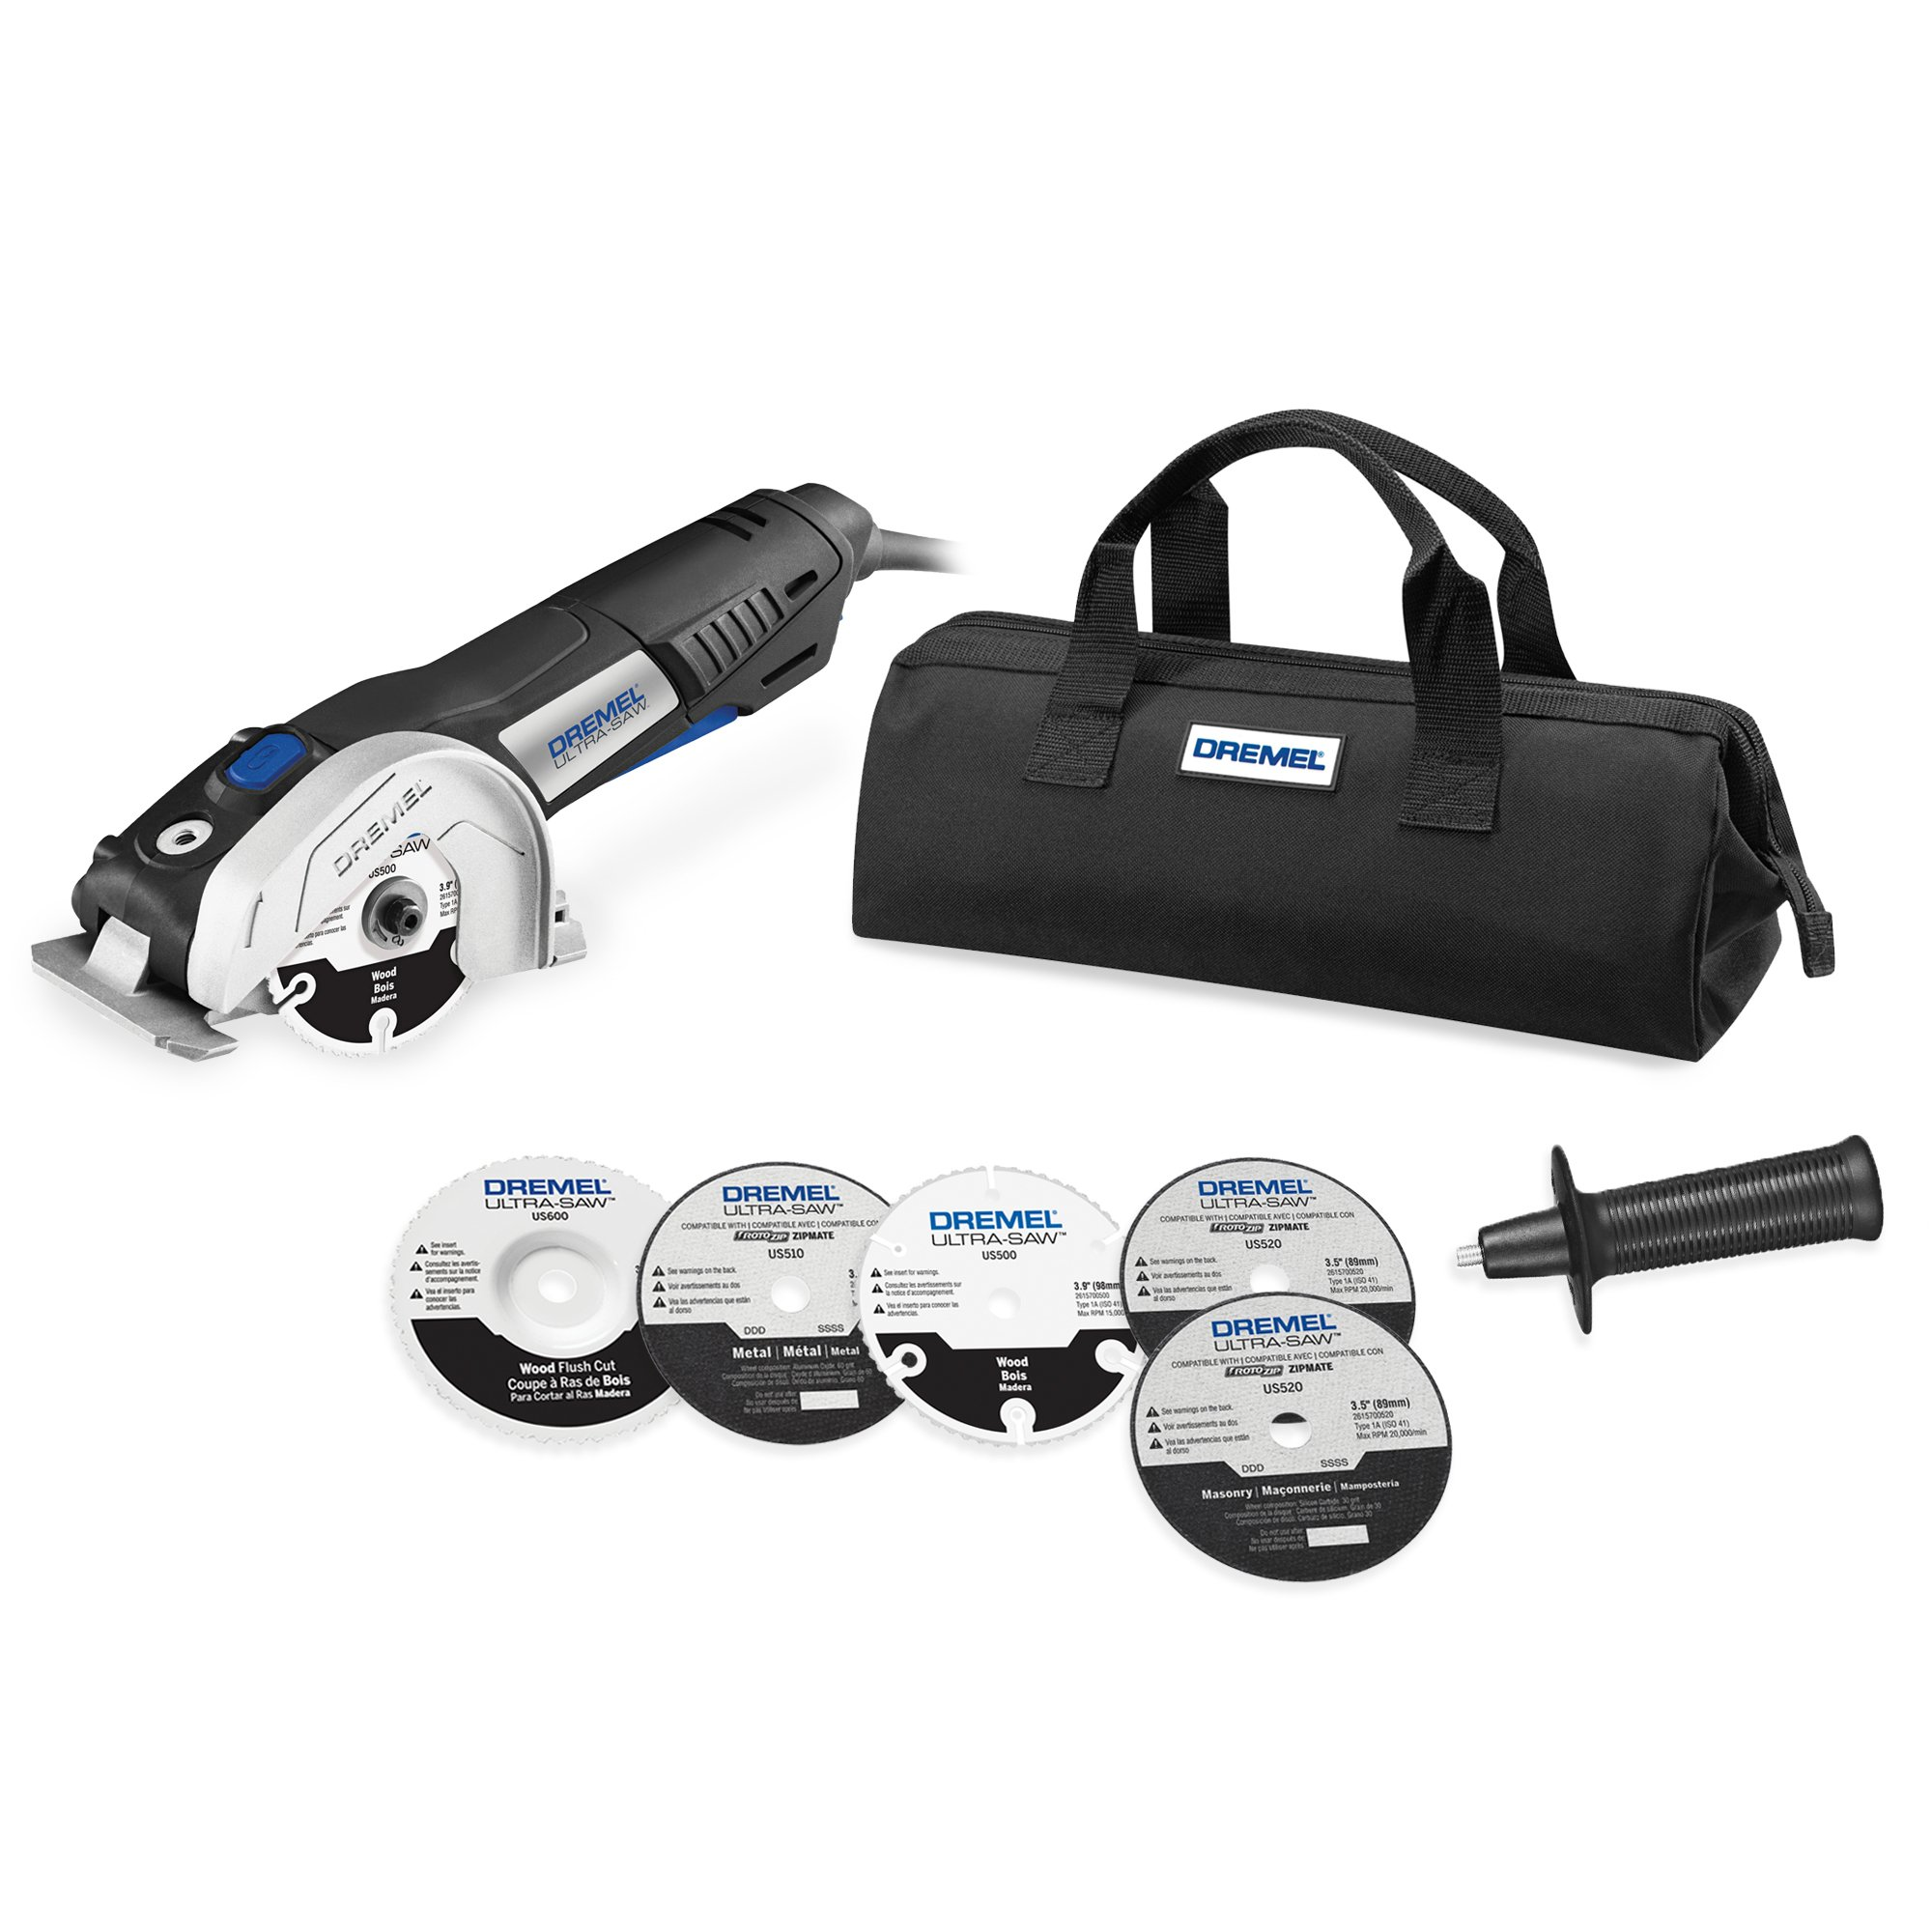 Dremel US40-03 Ultra-Saw Tool Kit with 5 Accessories and 1 Attachment